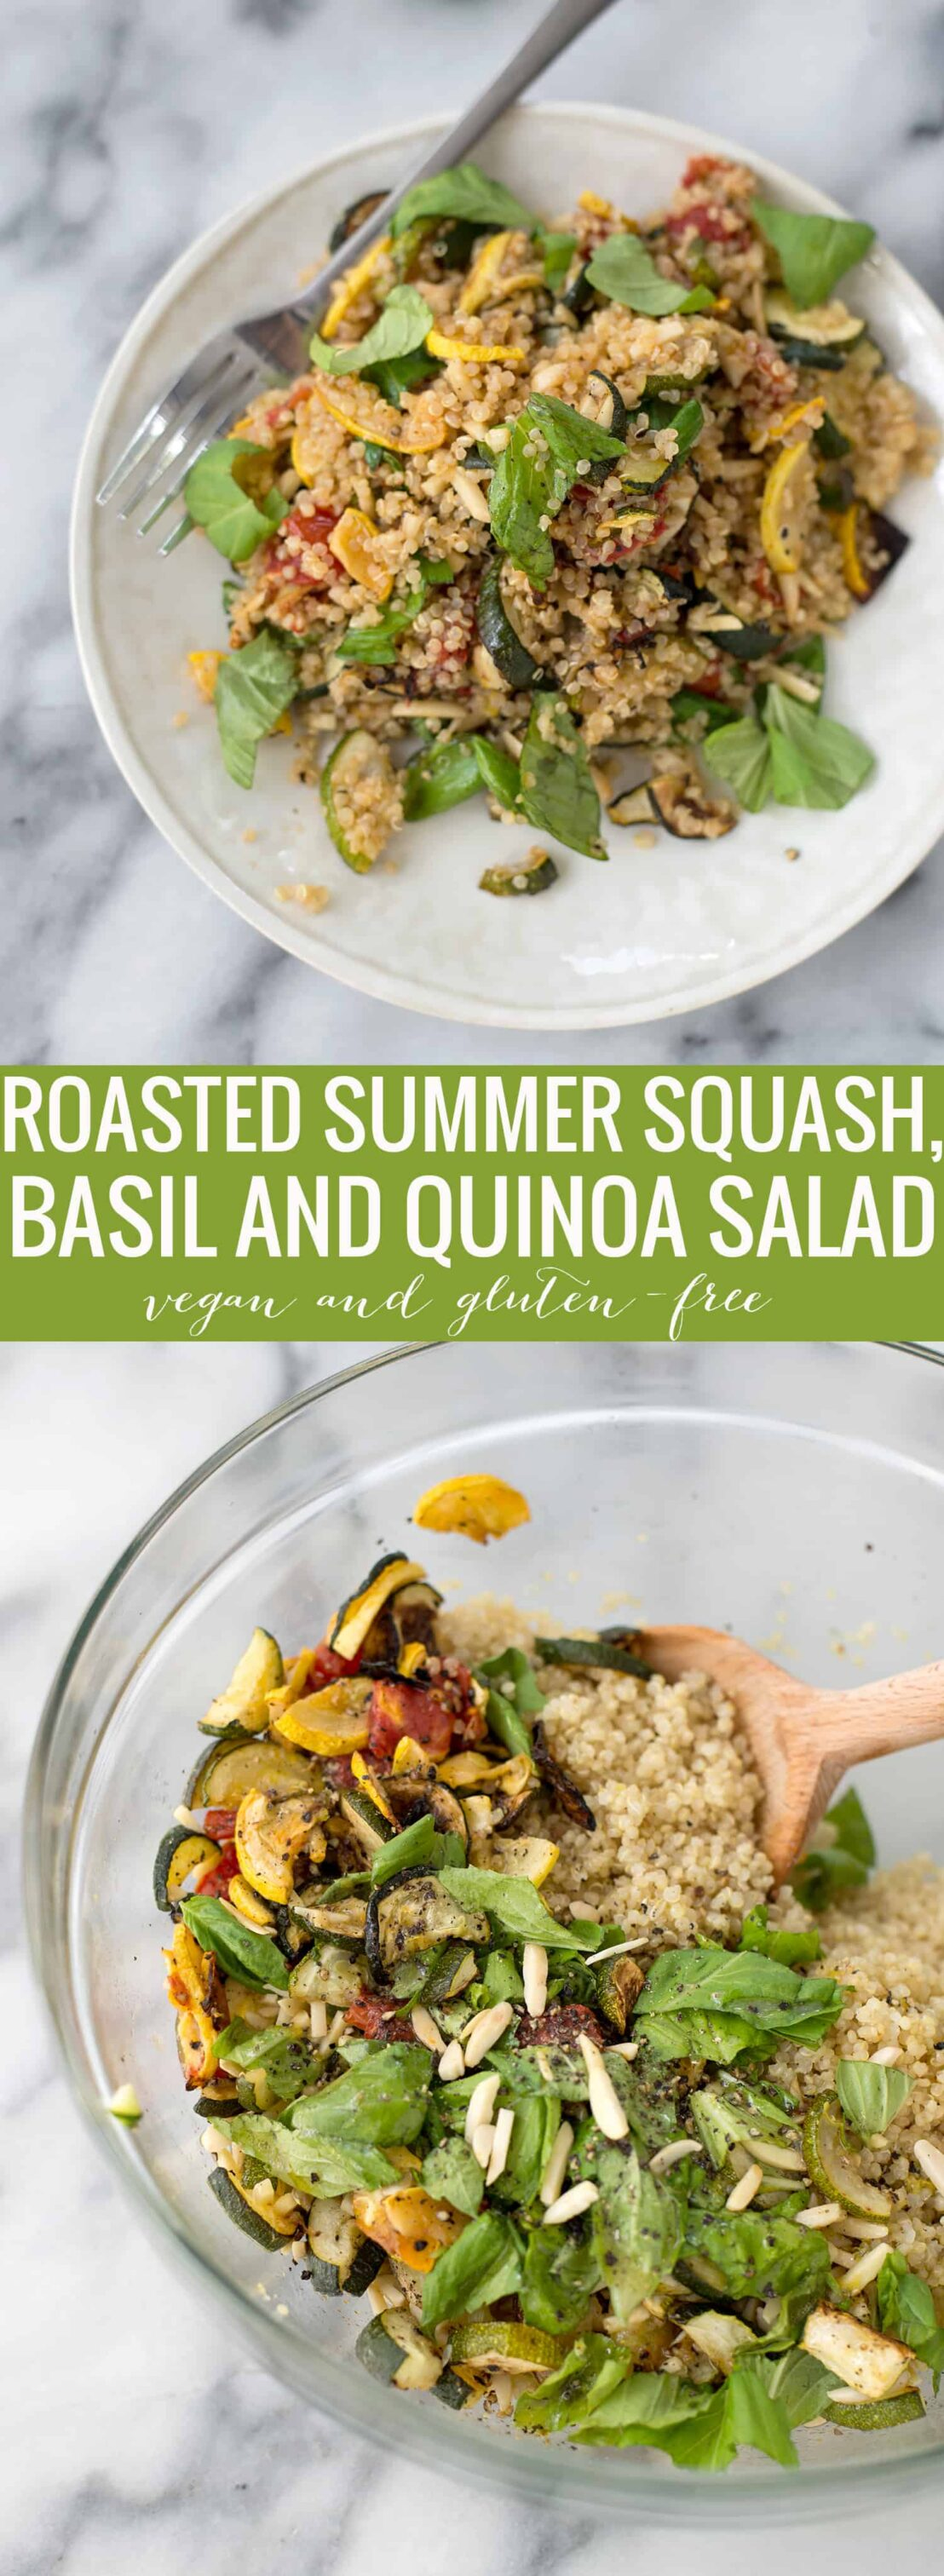 Squash and Quinoa Salad! This side dish is perfect for summer or dinners. Roasted zucchini, squash and tomatoes with quinoa and a lemon-basil dressing. Vegan and GlutenFree | www.delishknowledge.com